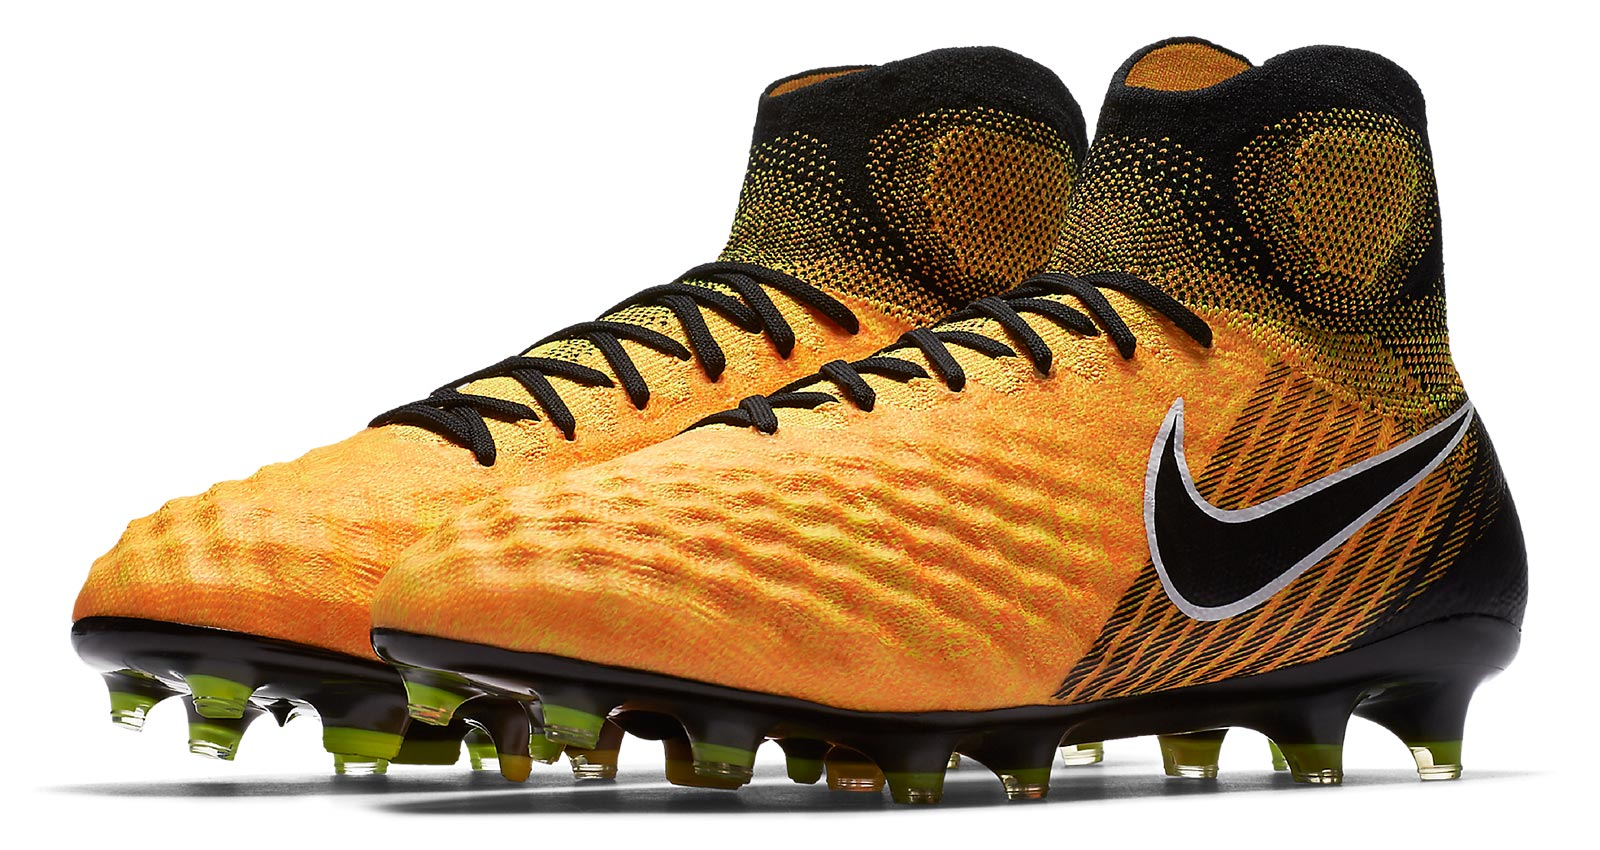 nike magista obra ii 39 lock in let loose 39 boots revealed footy headlines. Black Bedroom Furniture Sets. Home Design Ideas